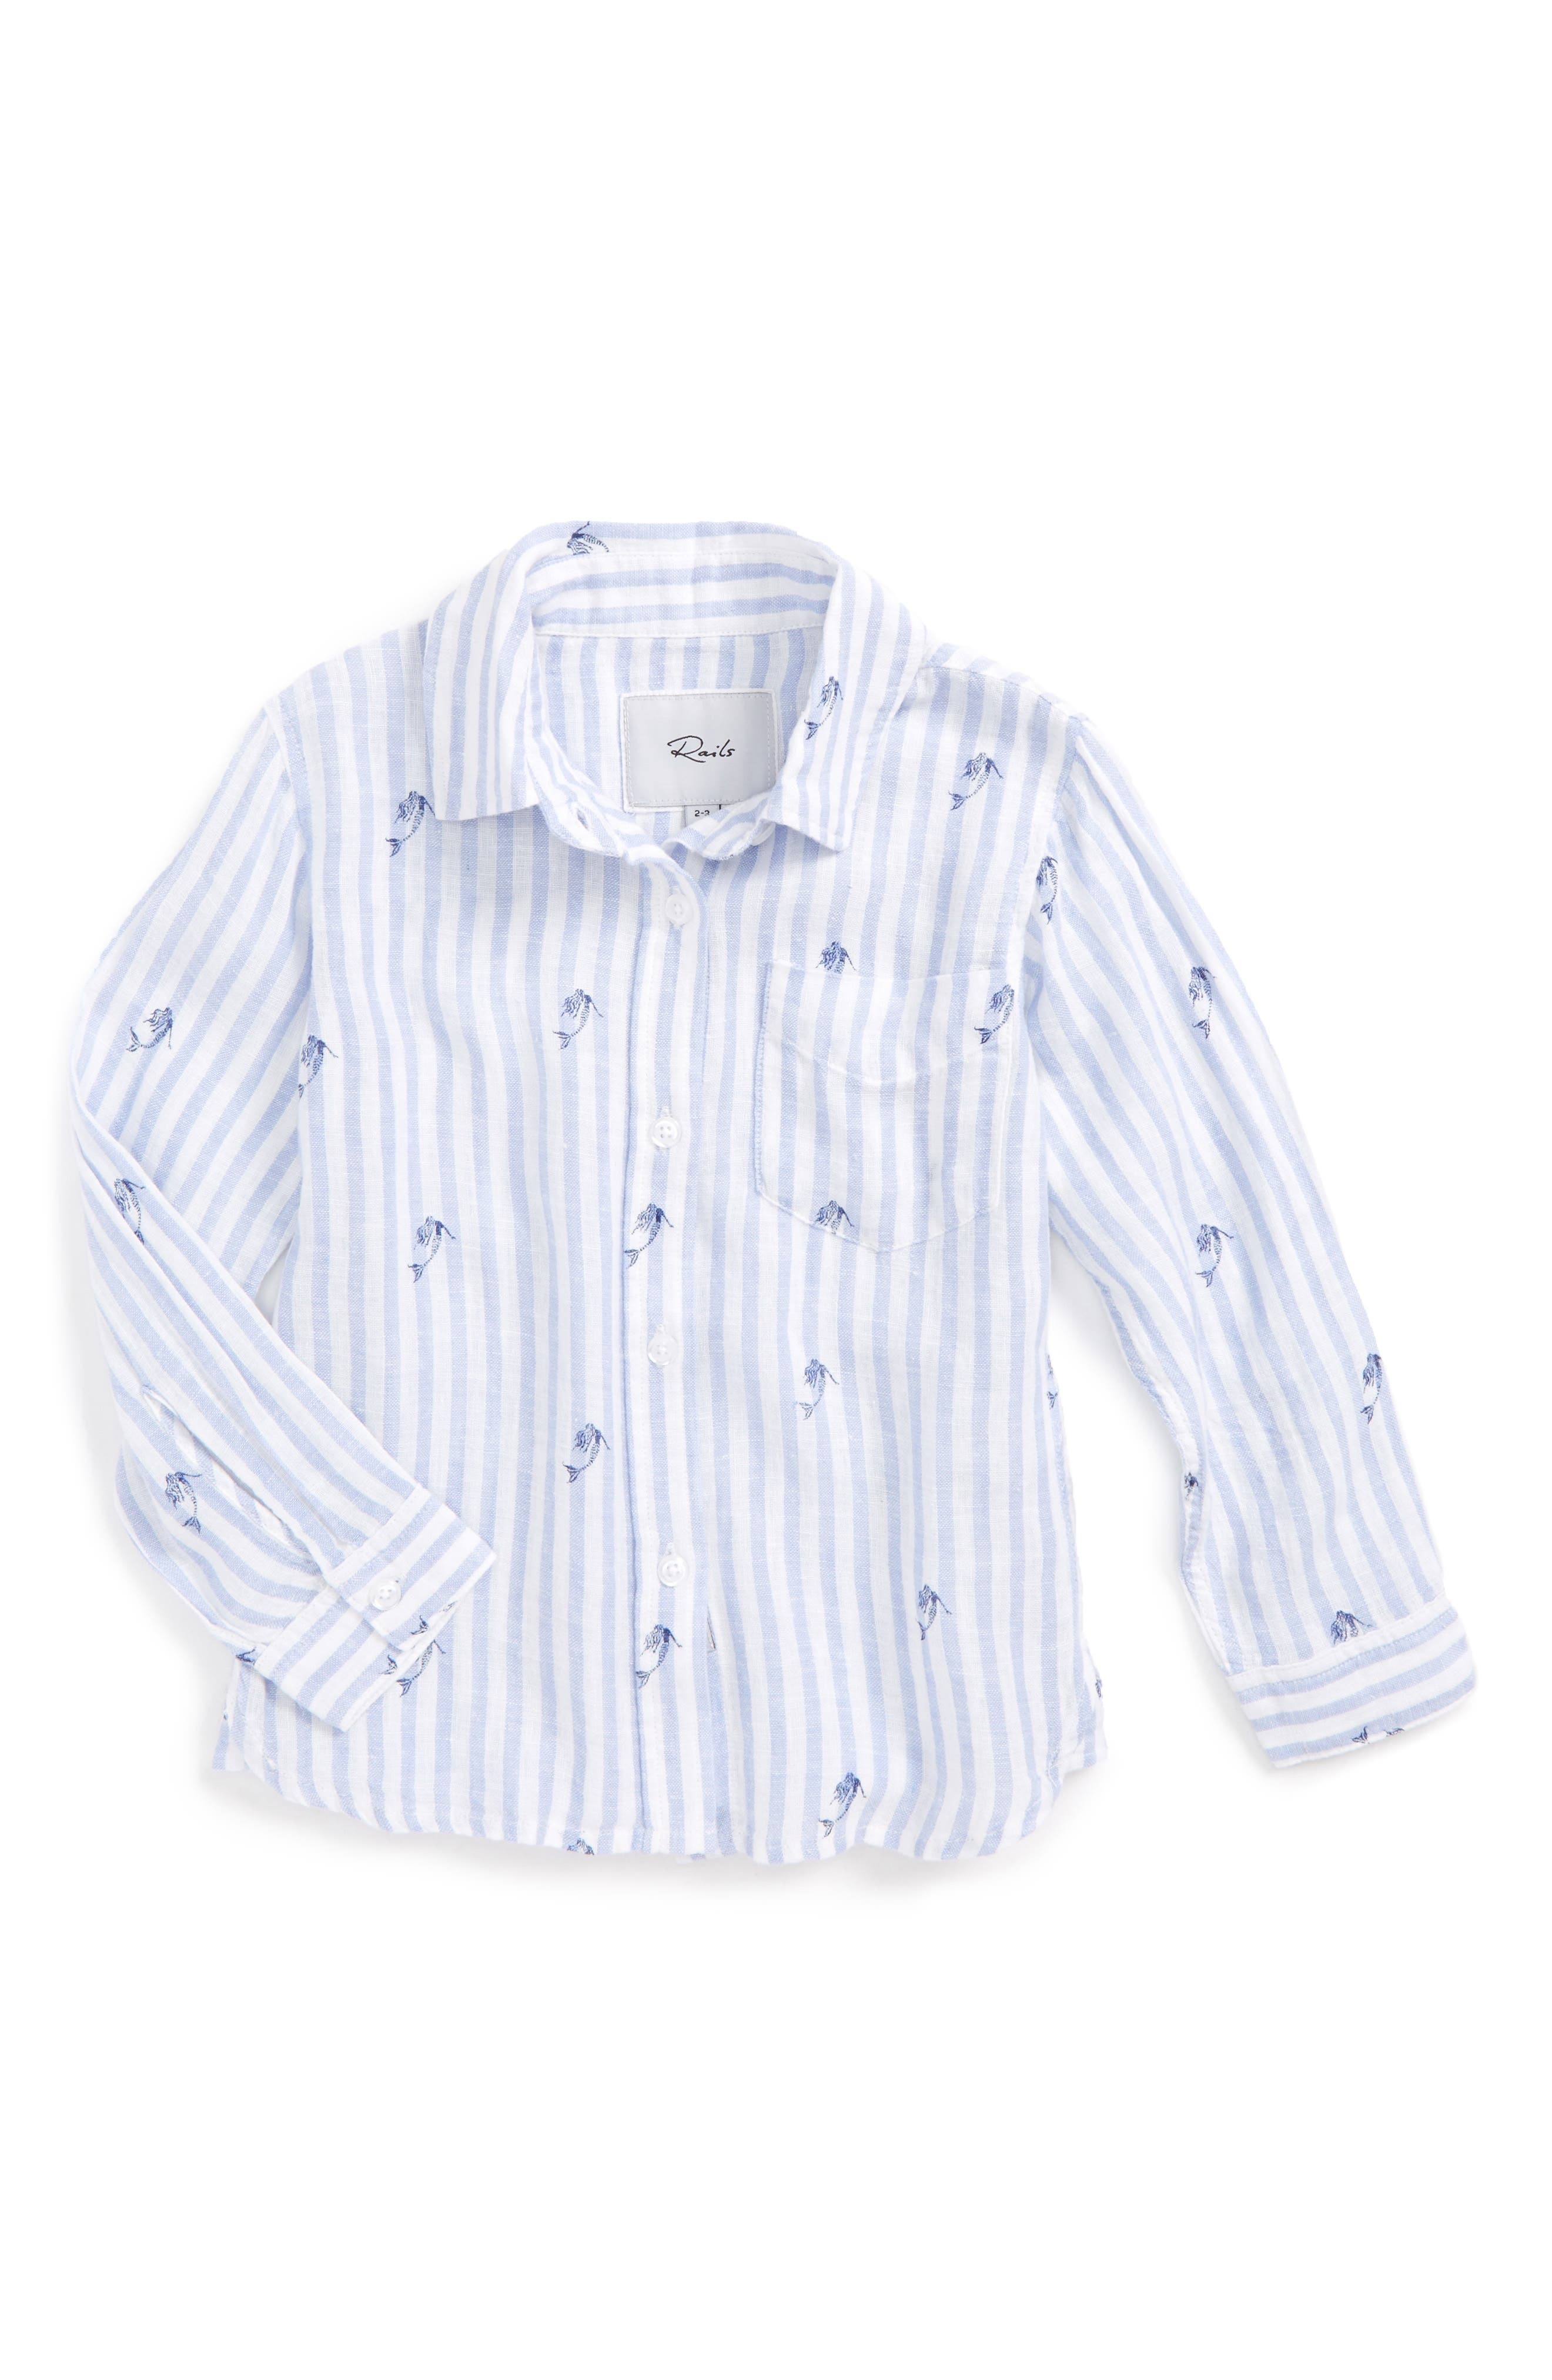 Main Image - Rails Cora Mermaid Stripe Button Front Shirt (Toddler Girls, Little Girls & Big Girls)